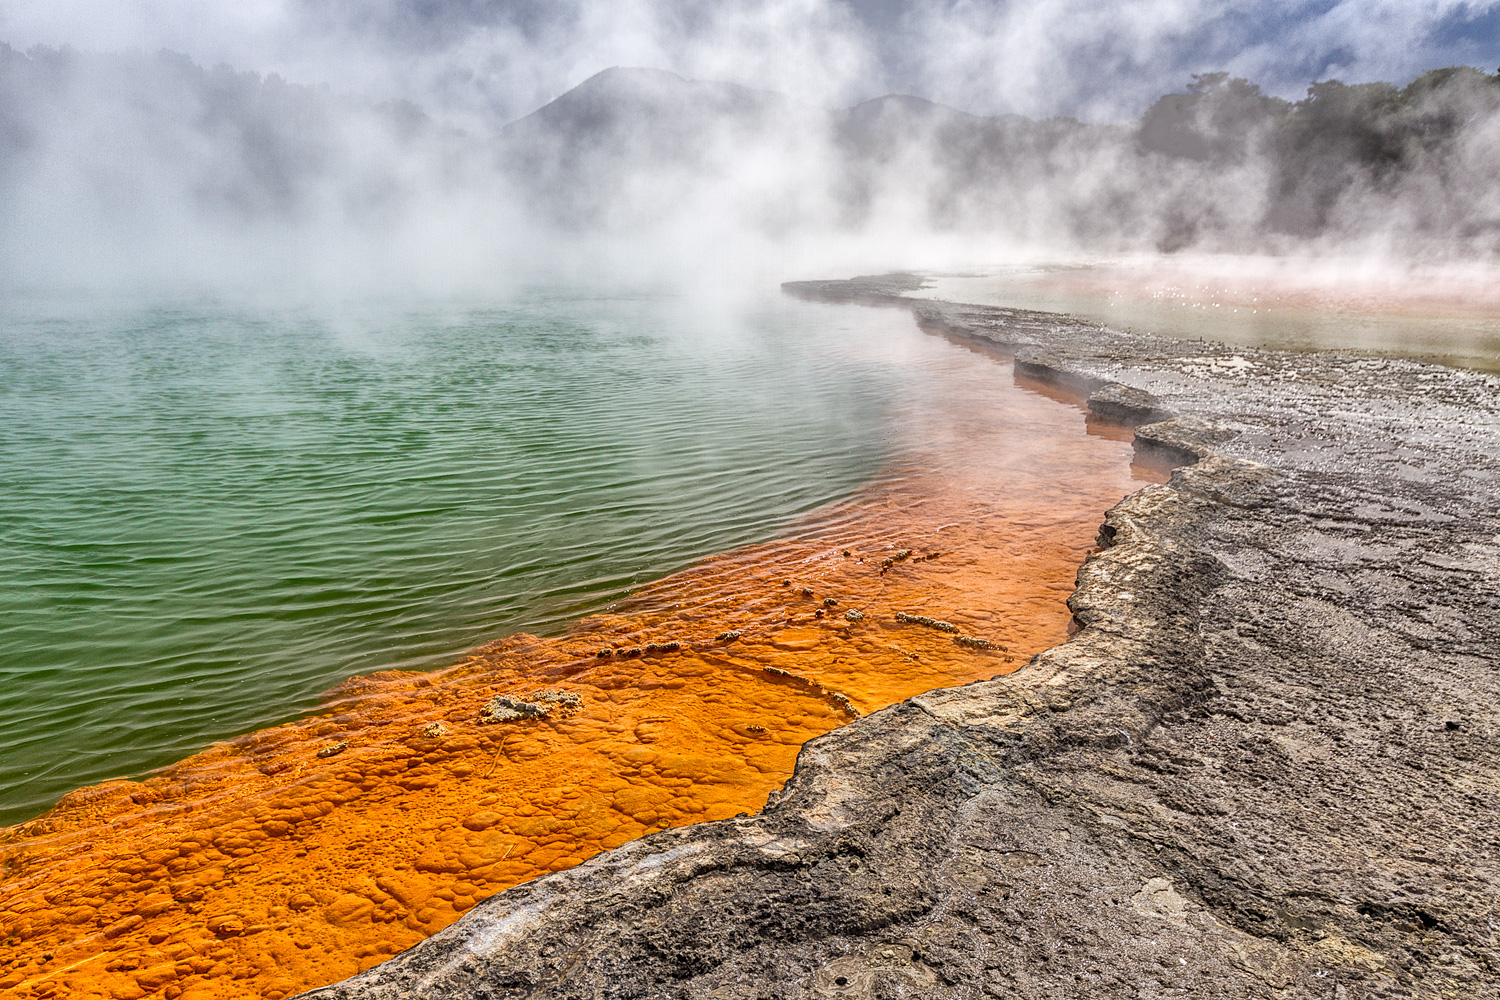 The Champagne Pool. 16 mm | 1/200 sec | f8 | ISO100